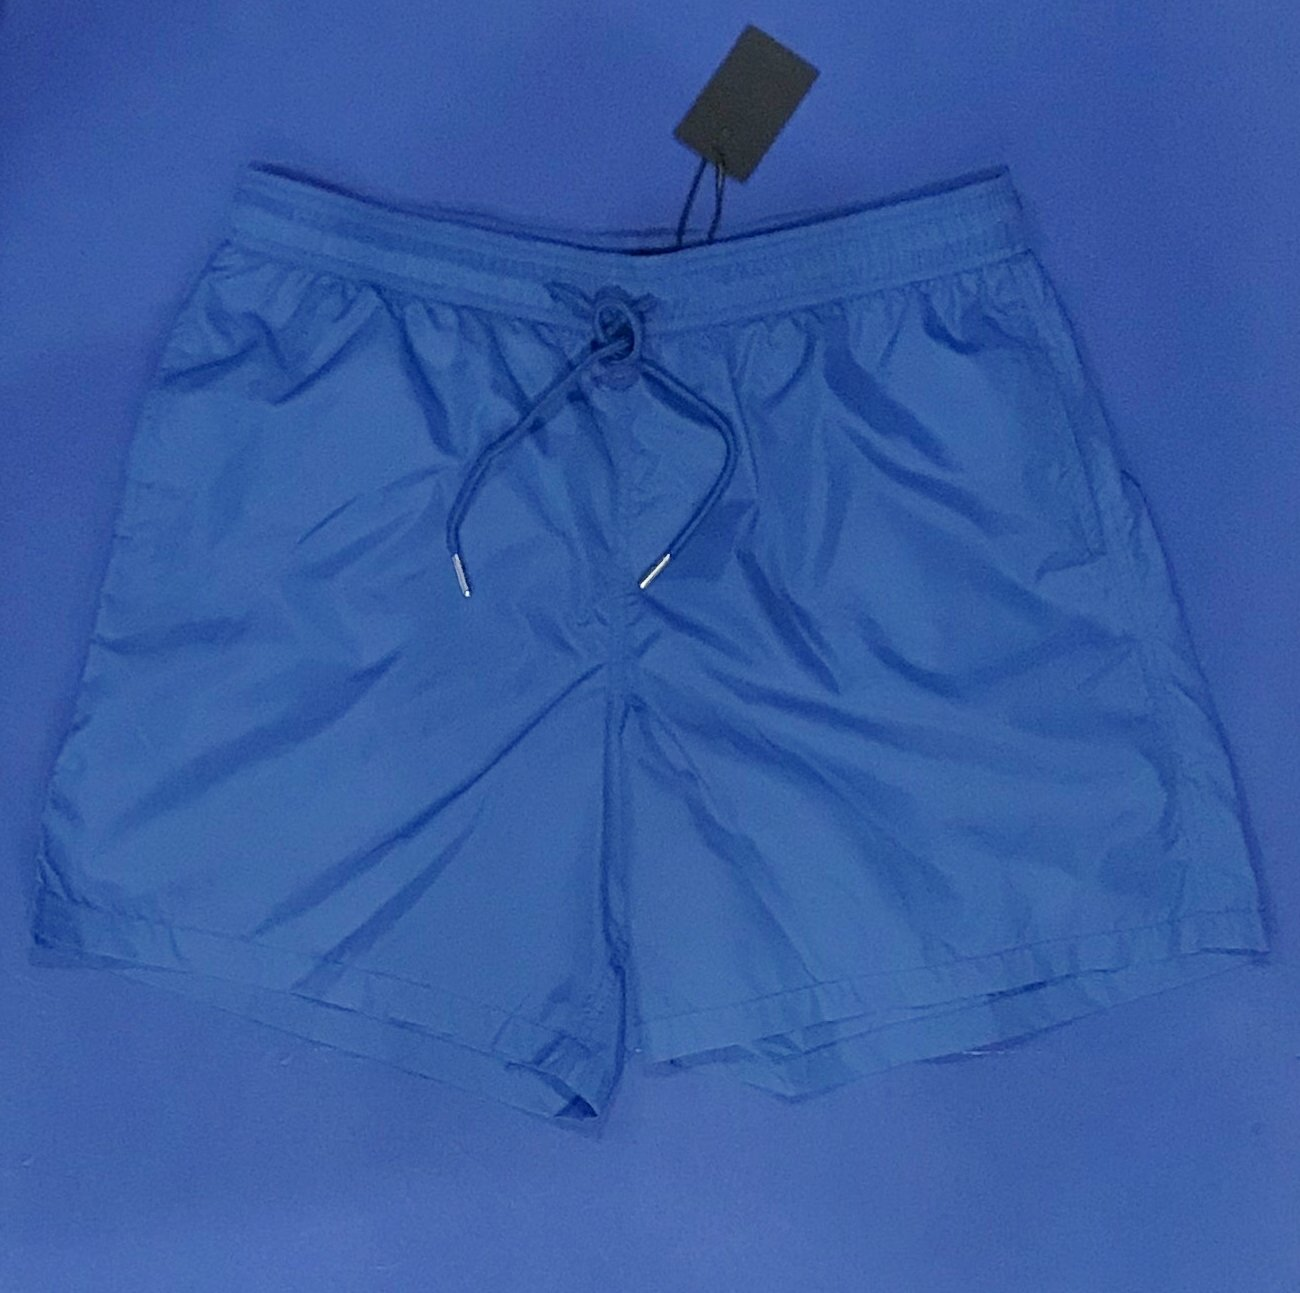 NWT Jared Lang Men's Royal Blue Swim Trunks - L